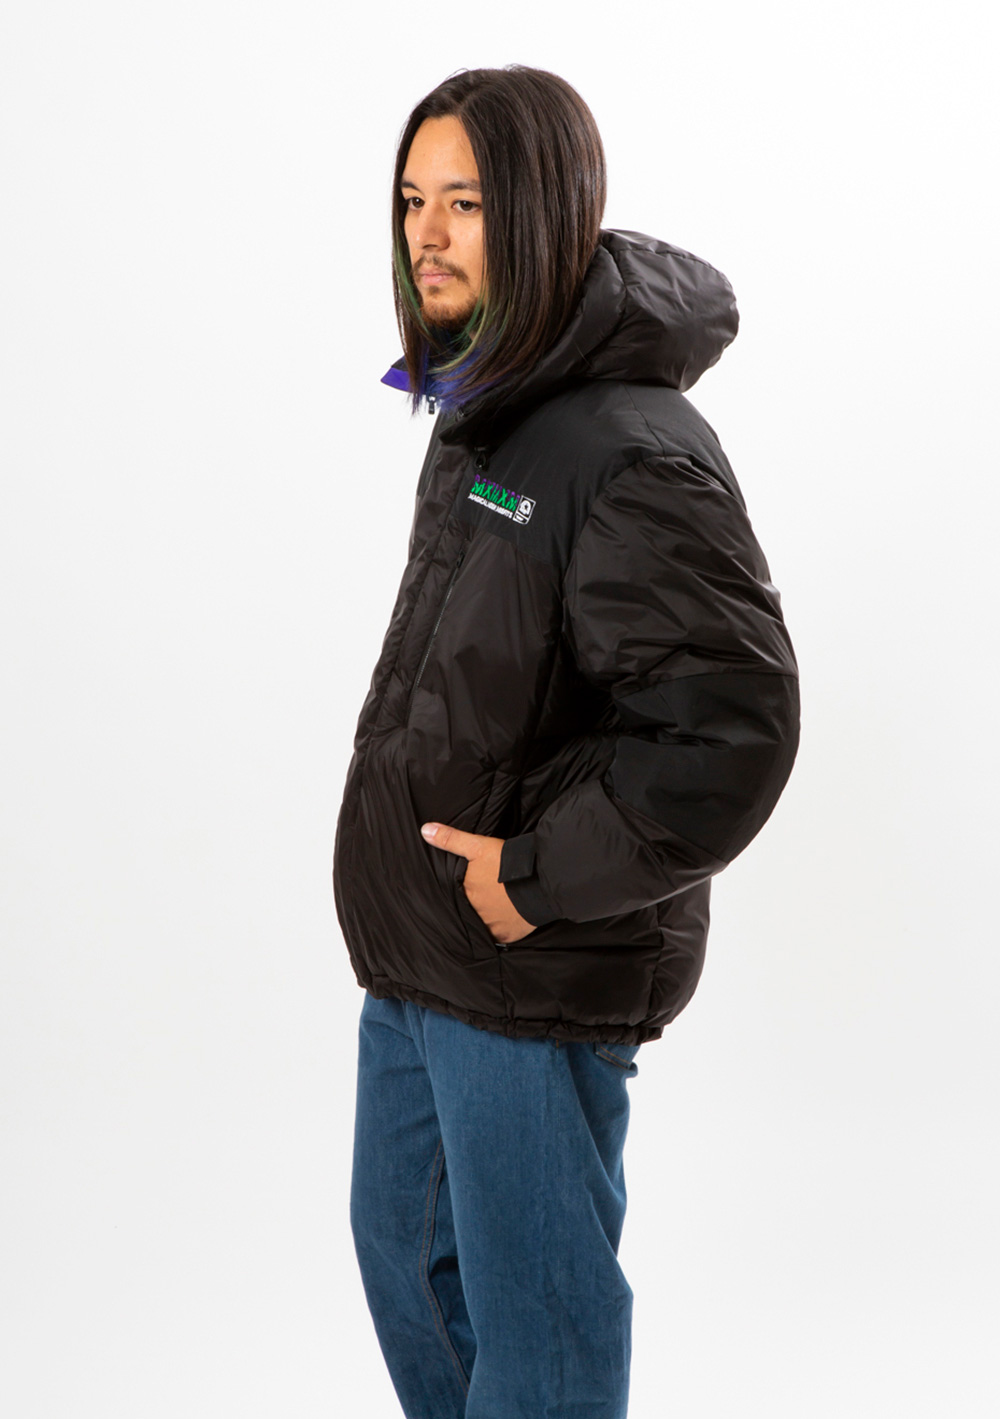 MxMxM HOODED PUFFY JKT